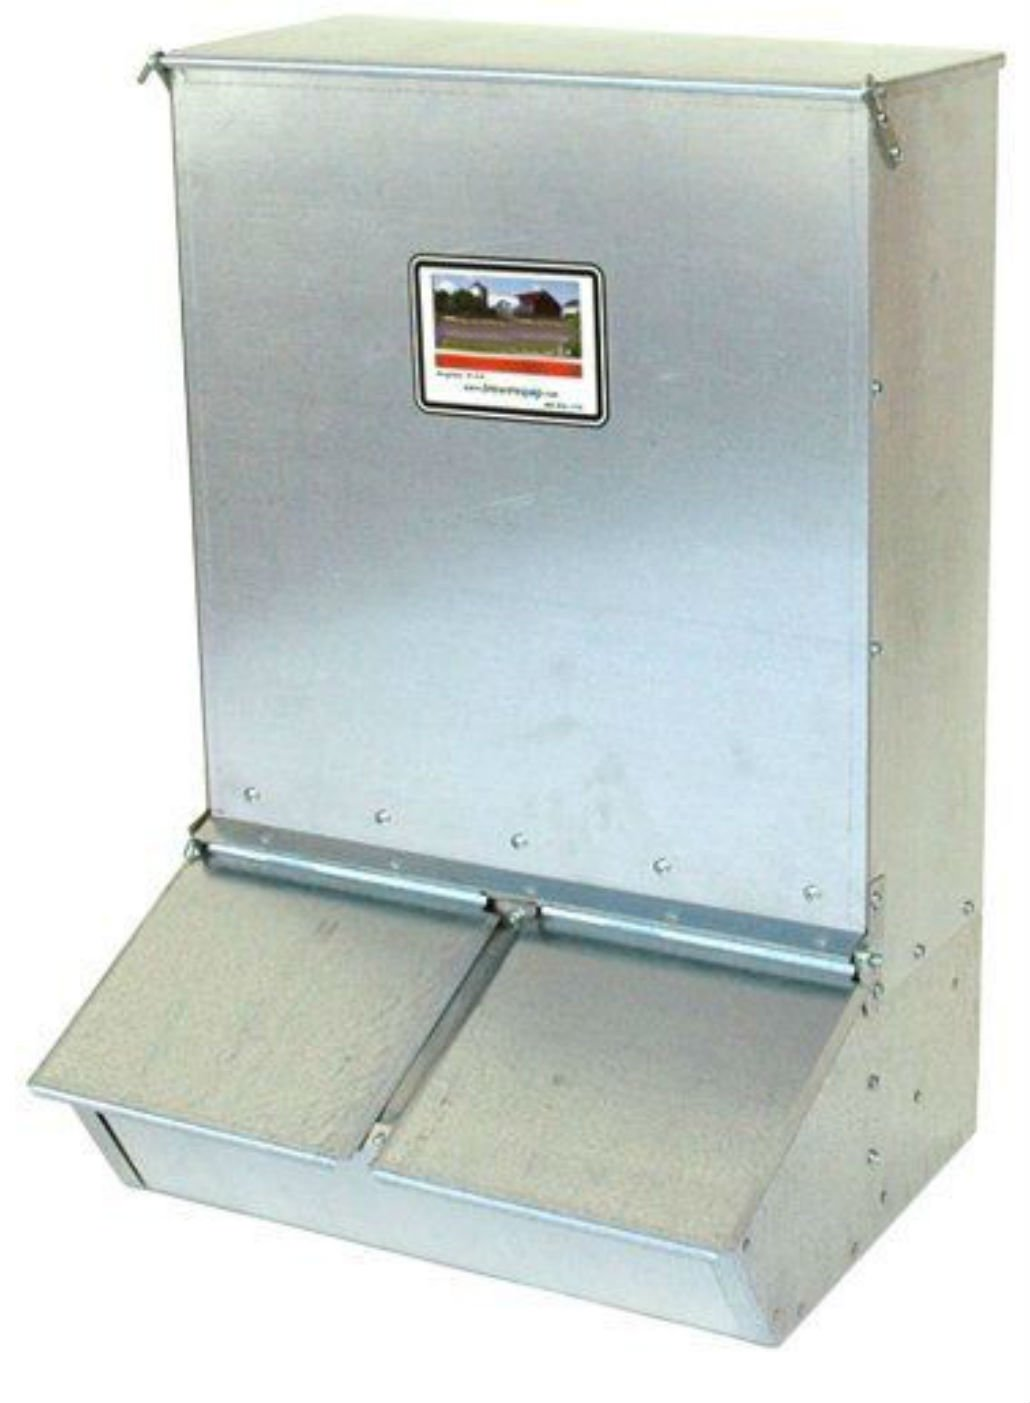 Brower 22H 2 Door Supplement Hog Feeder - Heavy Duty - Hogs won't destroy!